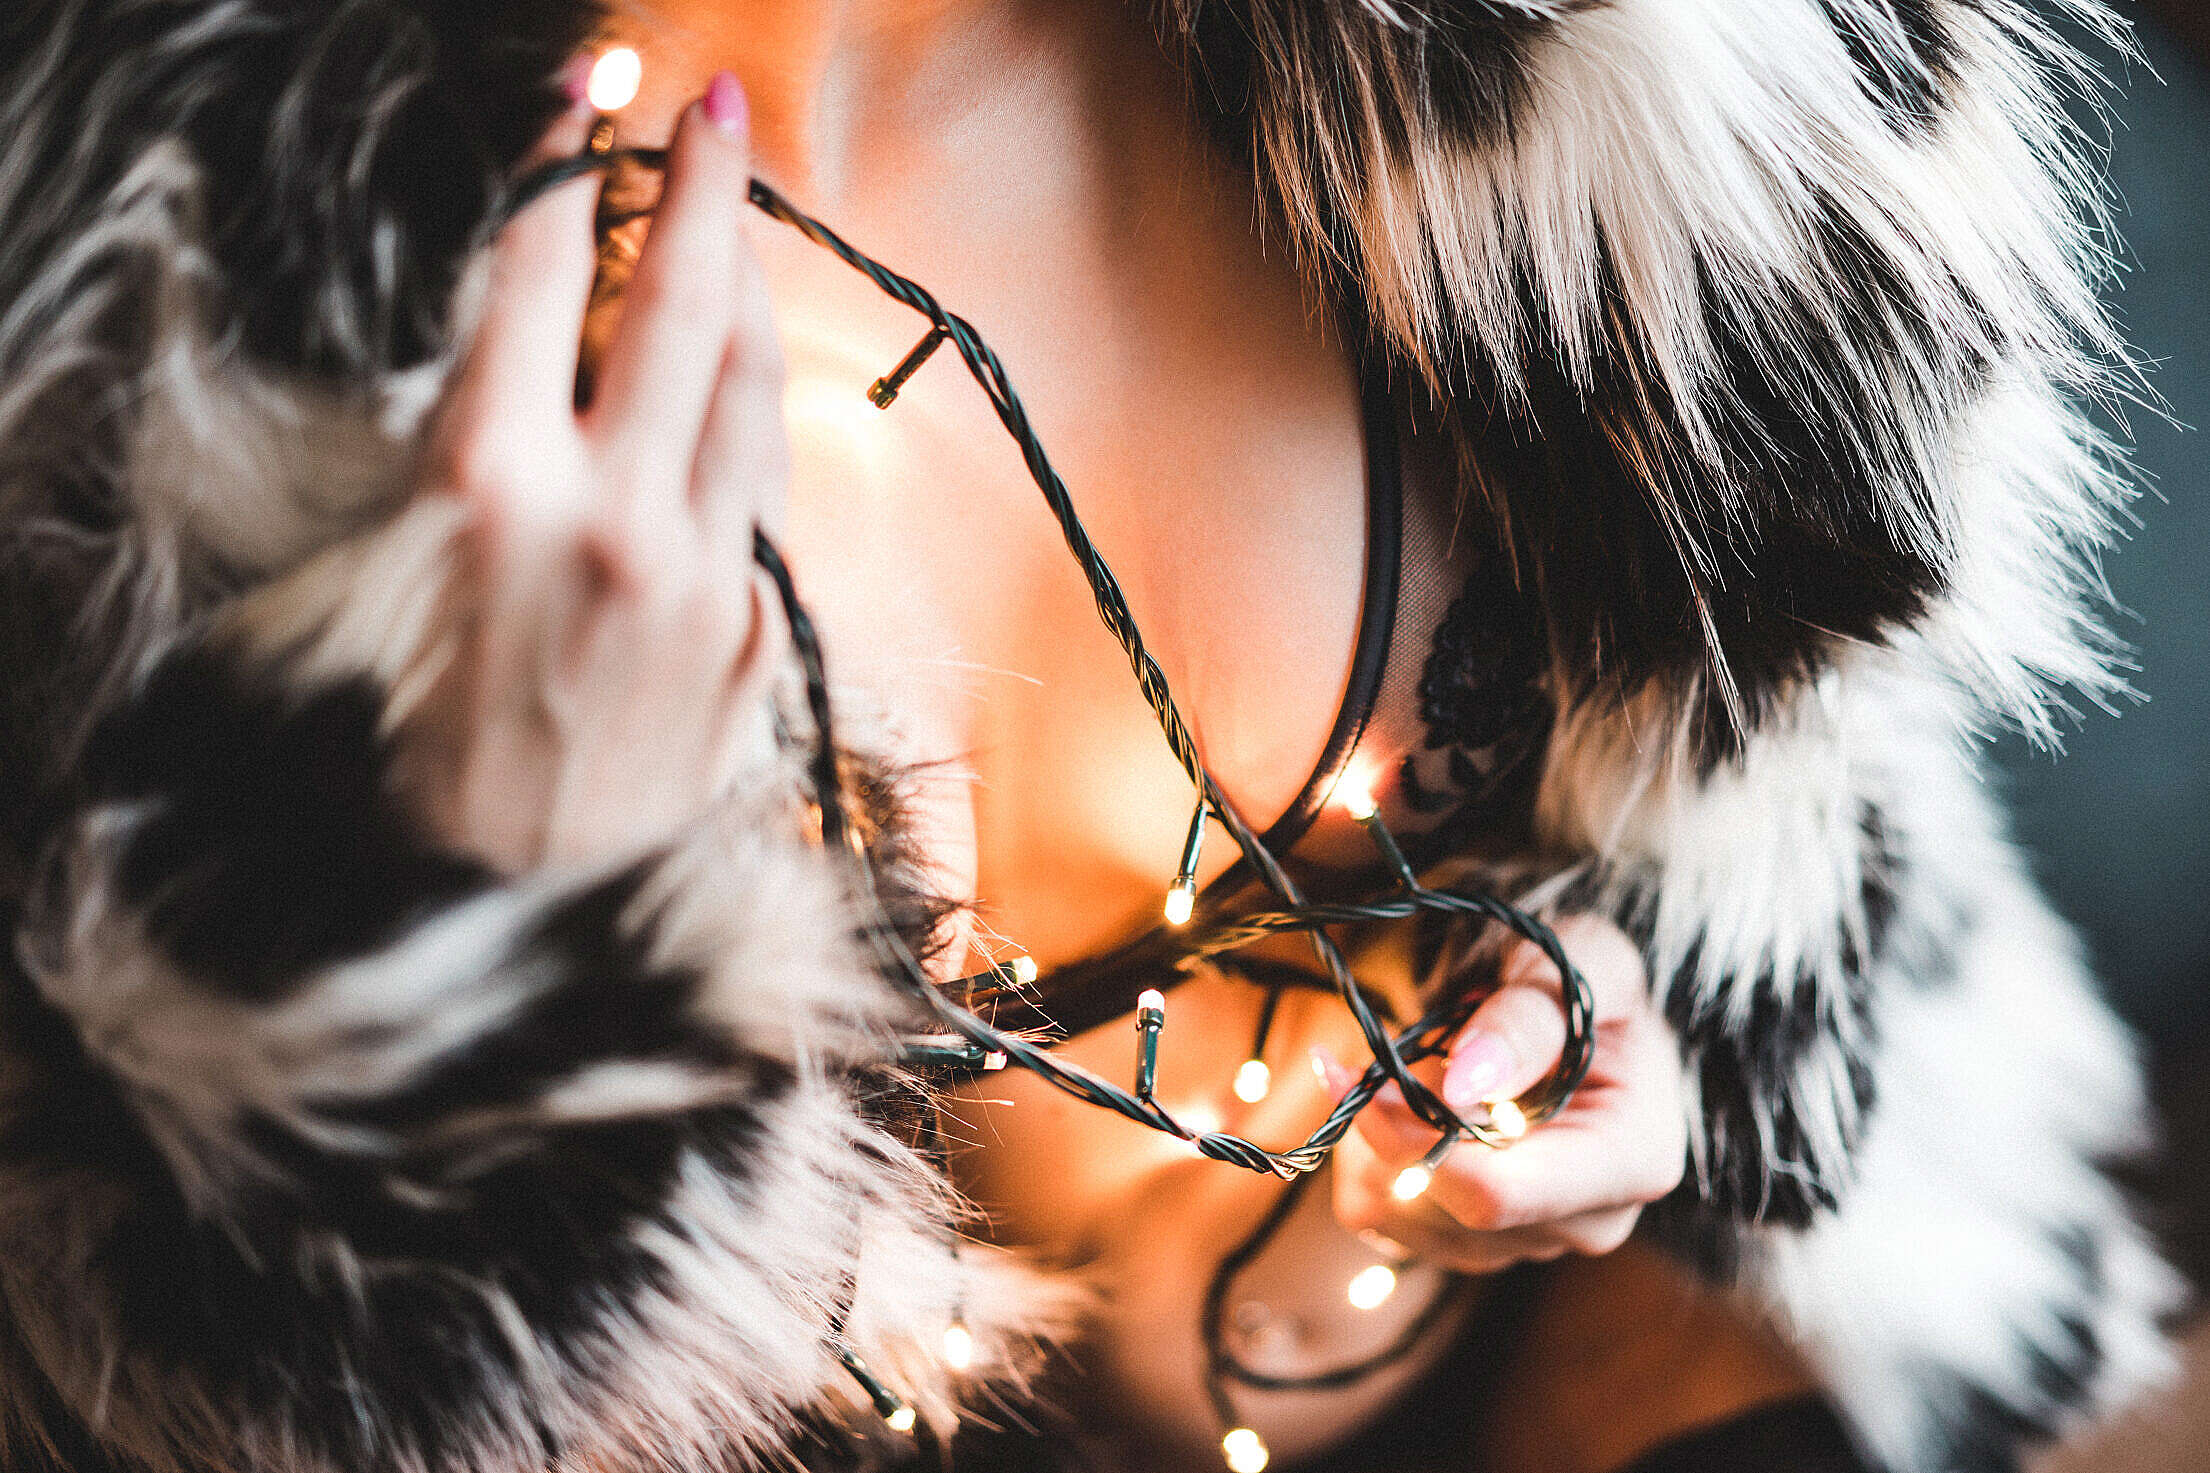 Woman in a Luxury Fur Coat with Christmas Lights Free Stock Photo